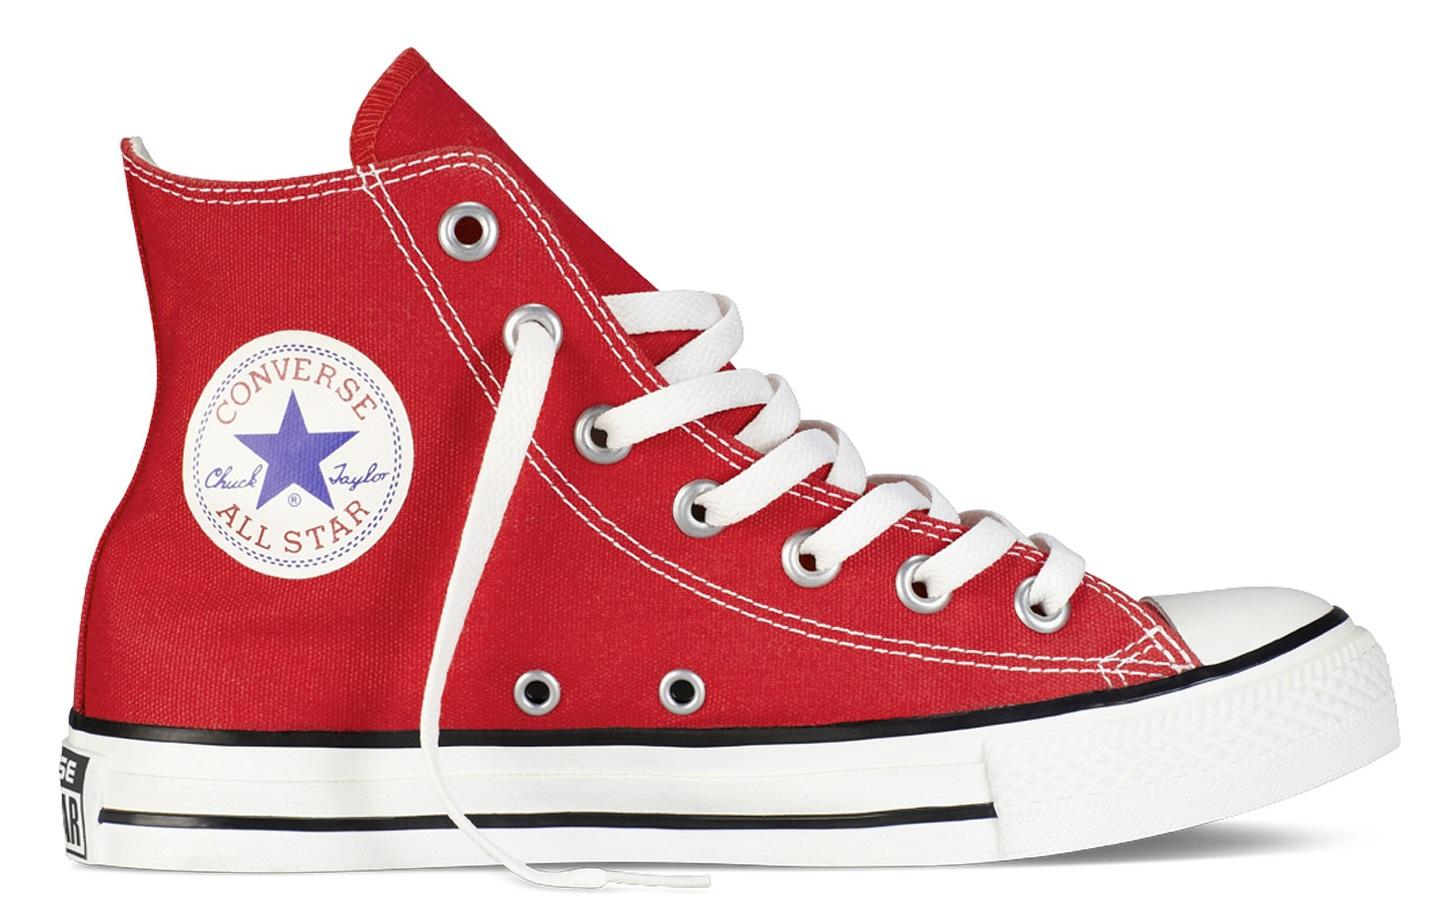 ed1bb49604 Converse All Star High Top Chuck Taylor, In Canvas Rosso - Acquista ...